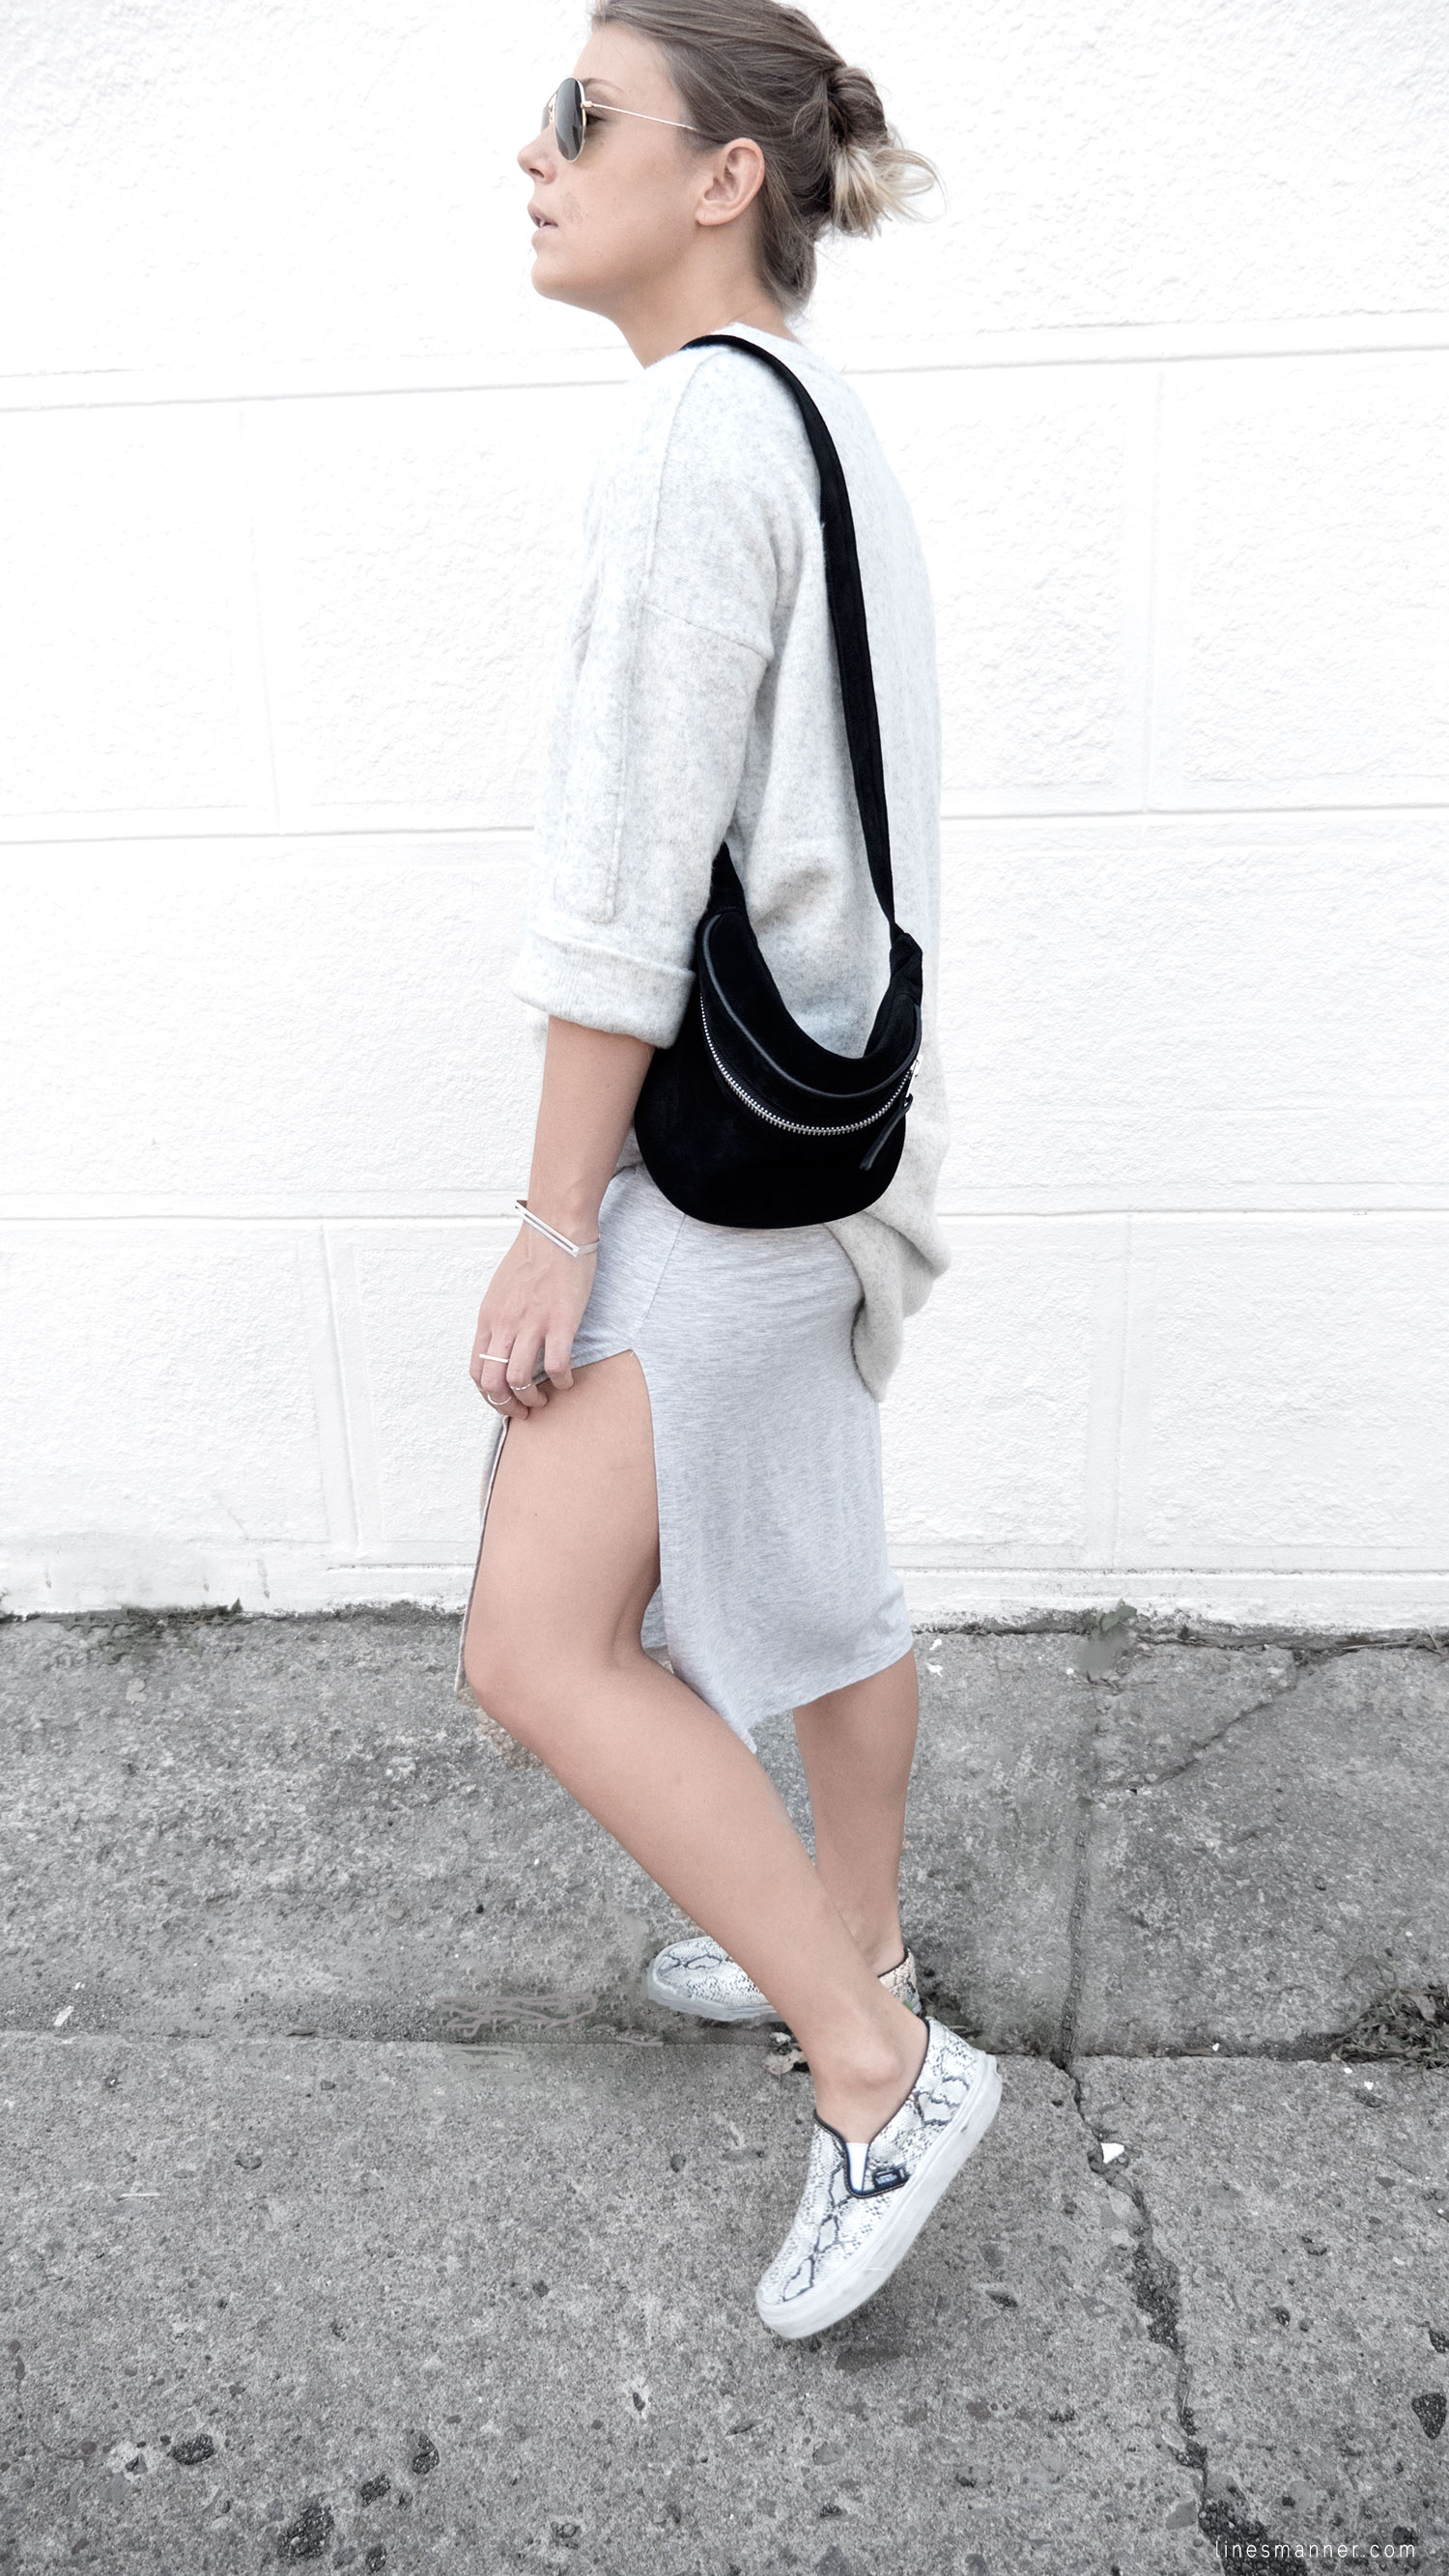 Lines-Manner-Fashion-Collaboration-The_Demeler-Monochrome-Grey_on_Grey-Fresh-Brightly-Outfit-Simplicity-Details-Trend-Minimalist-Flowy-Layering-Sleeves-Sweater_Dress-14